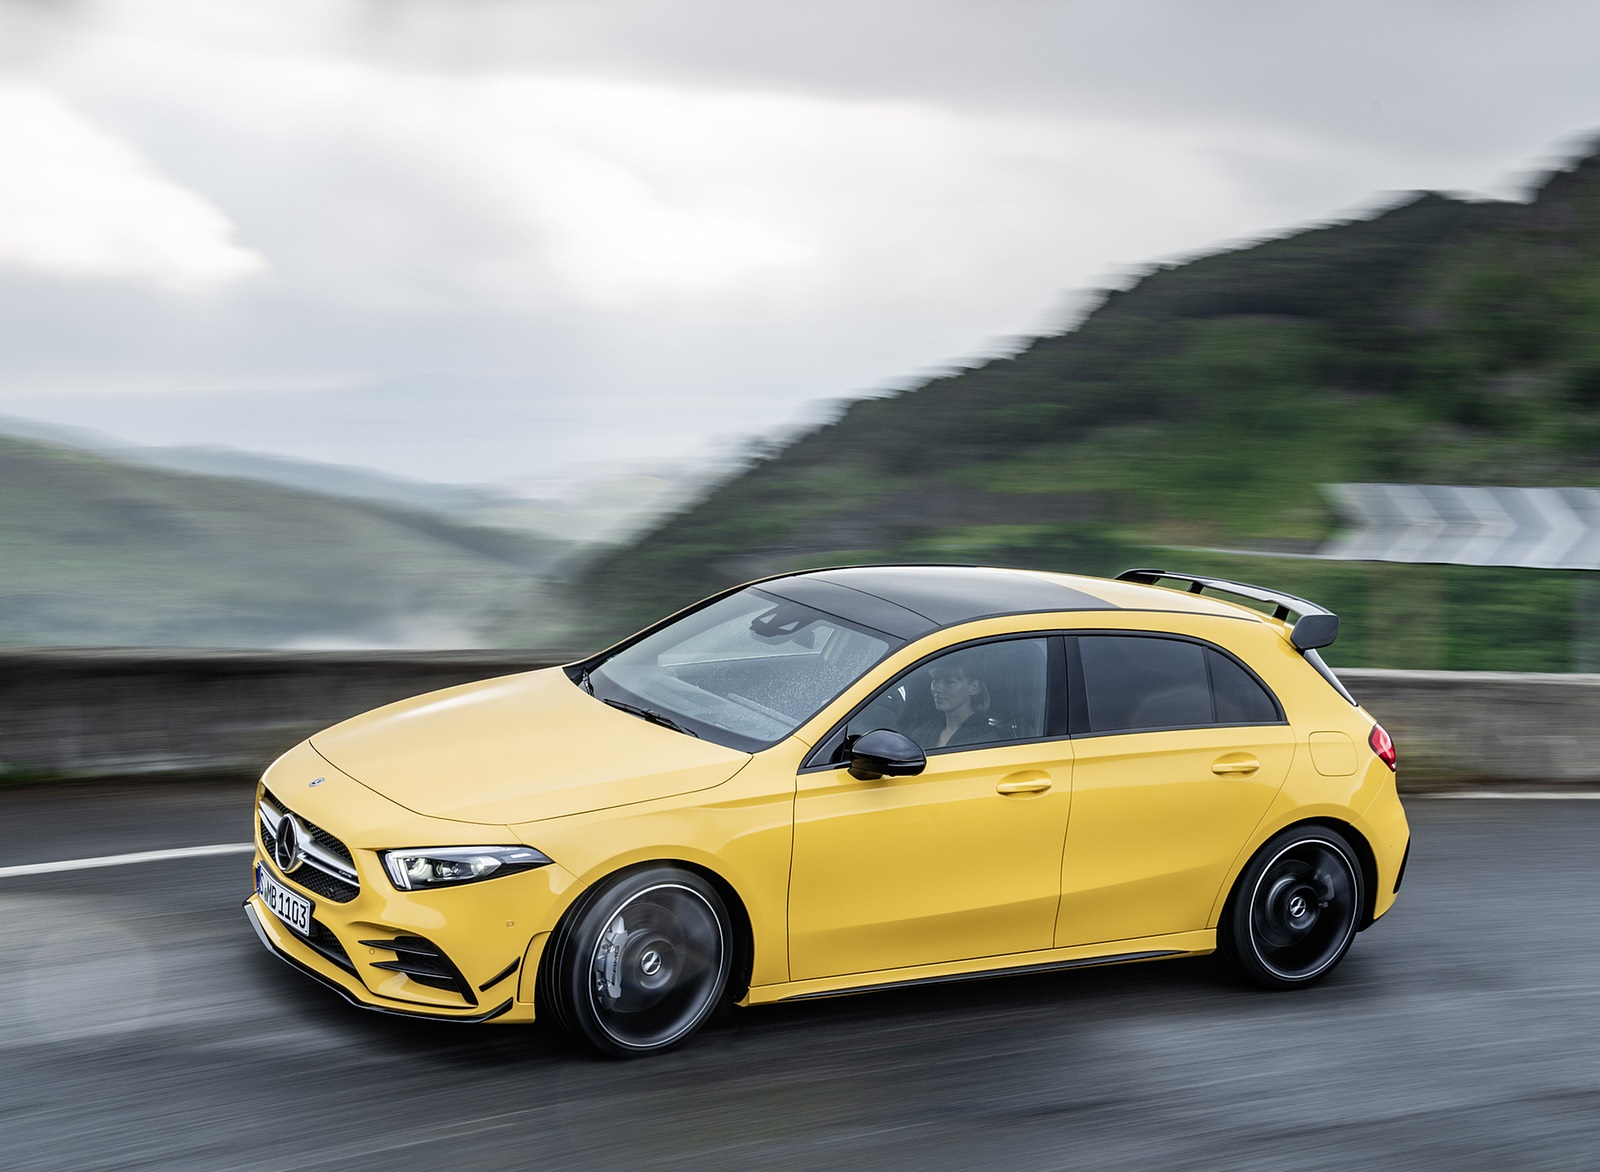 2019 Mercedes-AMG A35 4MATIC (Color: Sun Yellow) Front Three-Quarter Wallpapers #2 of 30